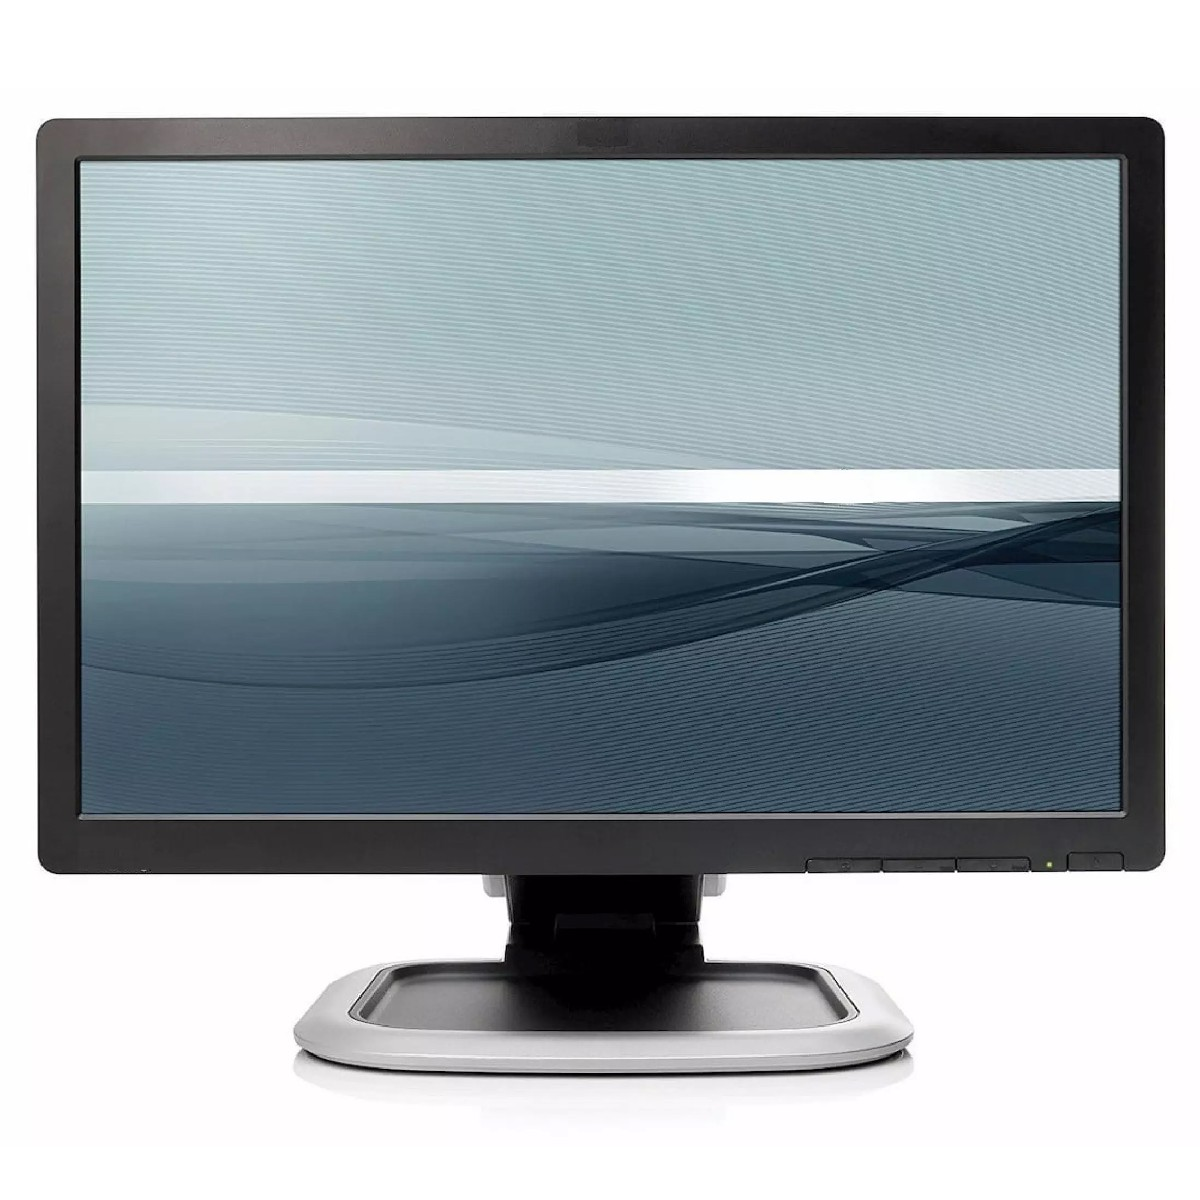 "Refurbished Monitor HP L2245 22"" LCD/TFT Active Matrix 1680x1050 60Hz 16:10 1000:1 με έξοδο VGA / DVI-D και 3 USB"